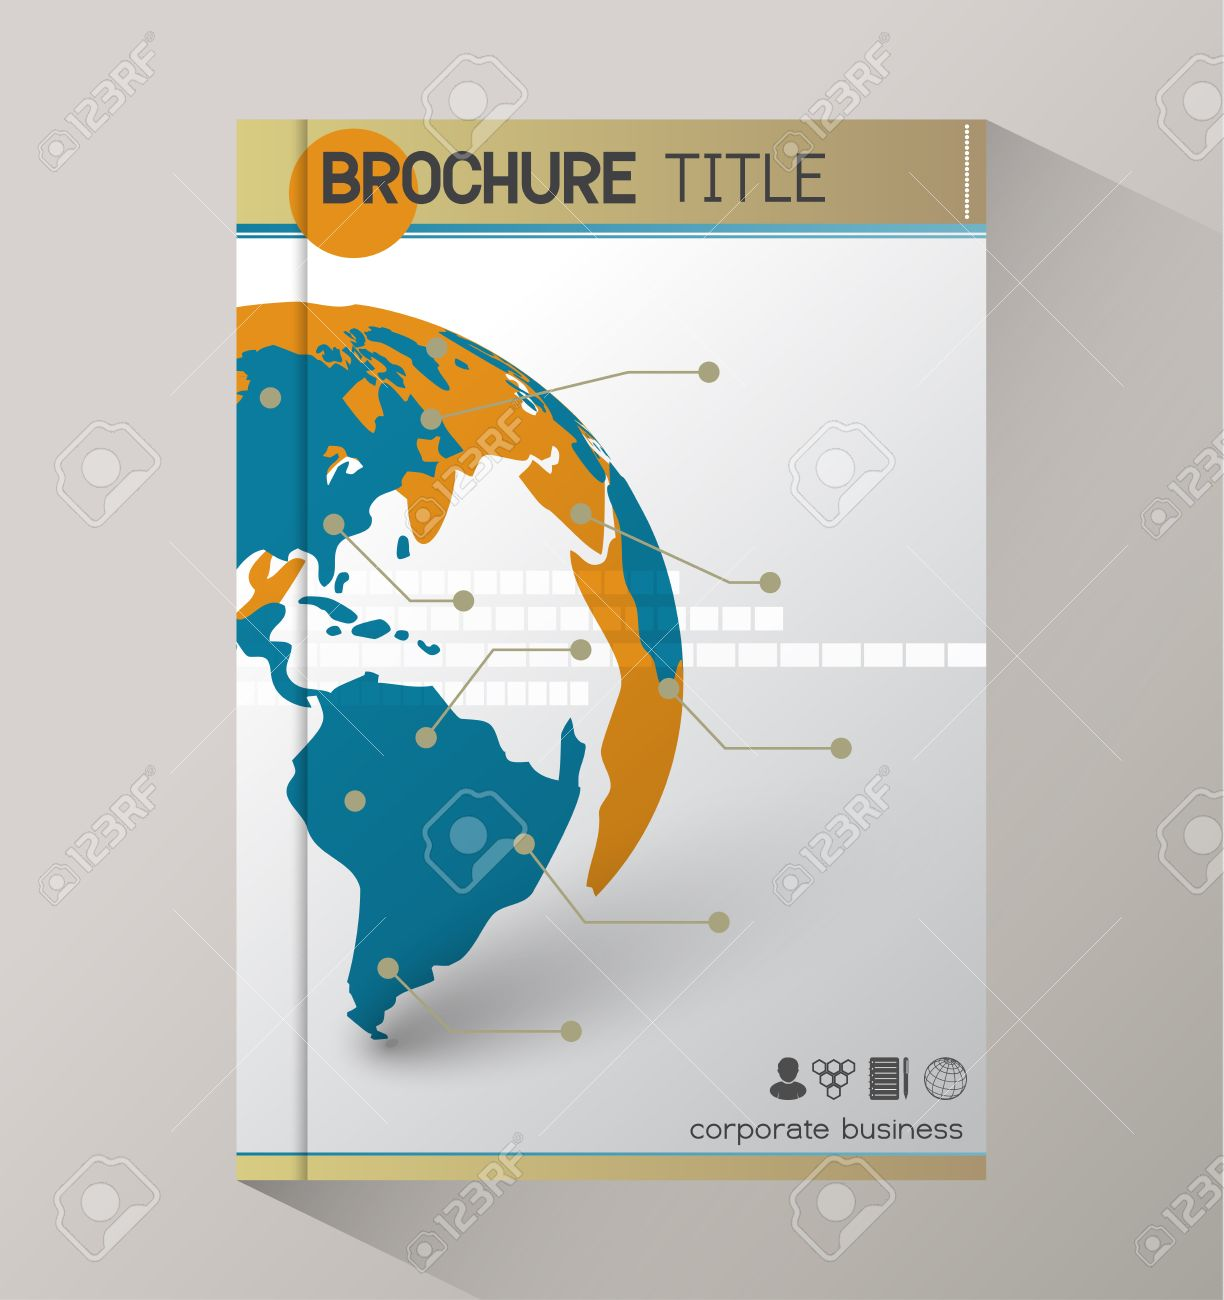 Annual Report Business Statistics Template For Magazine, Brochure ...